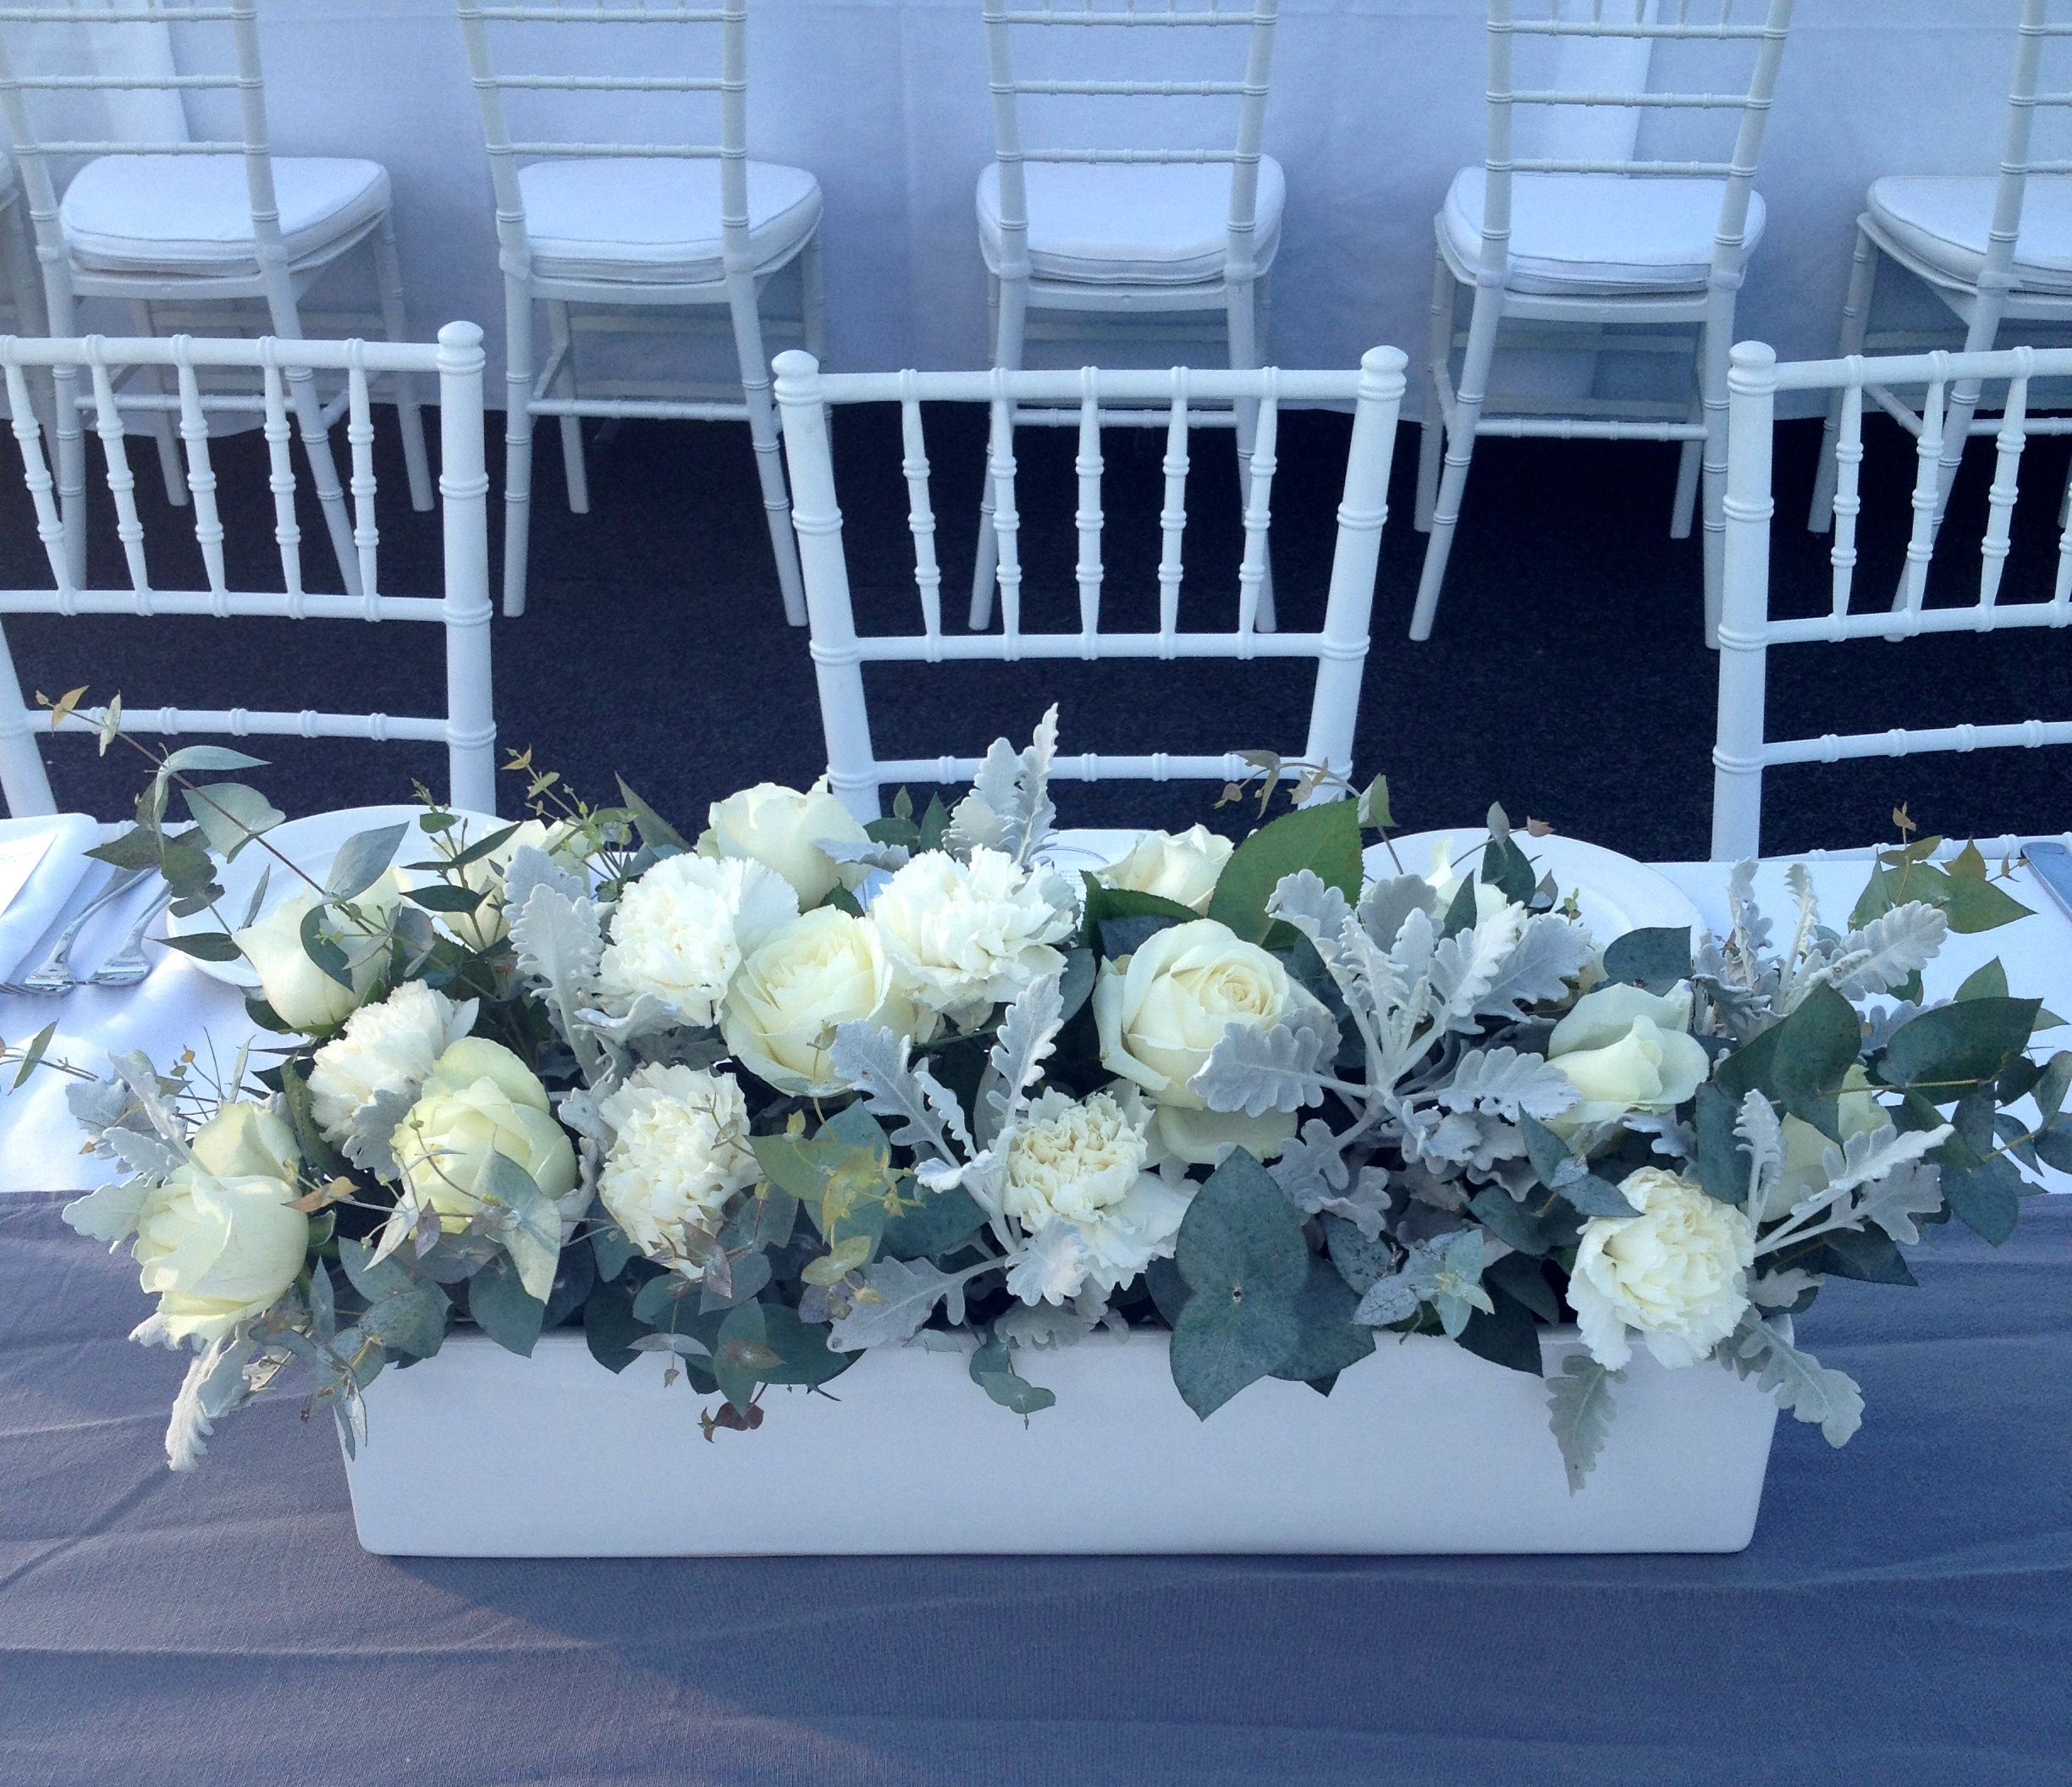 Wedding and event flowers by Alba Roses www.albaroses.com.au